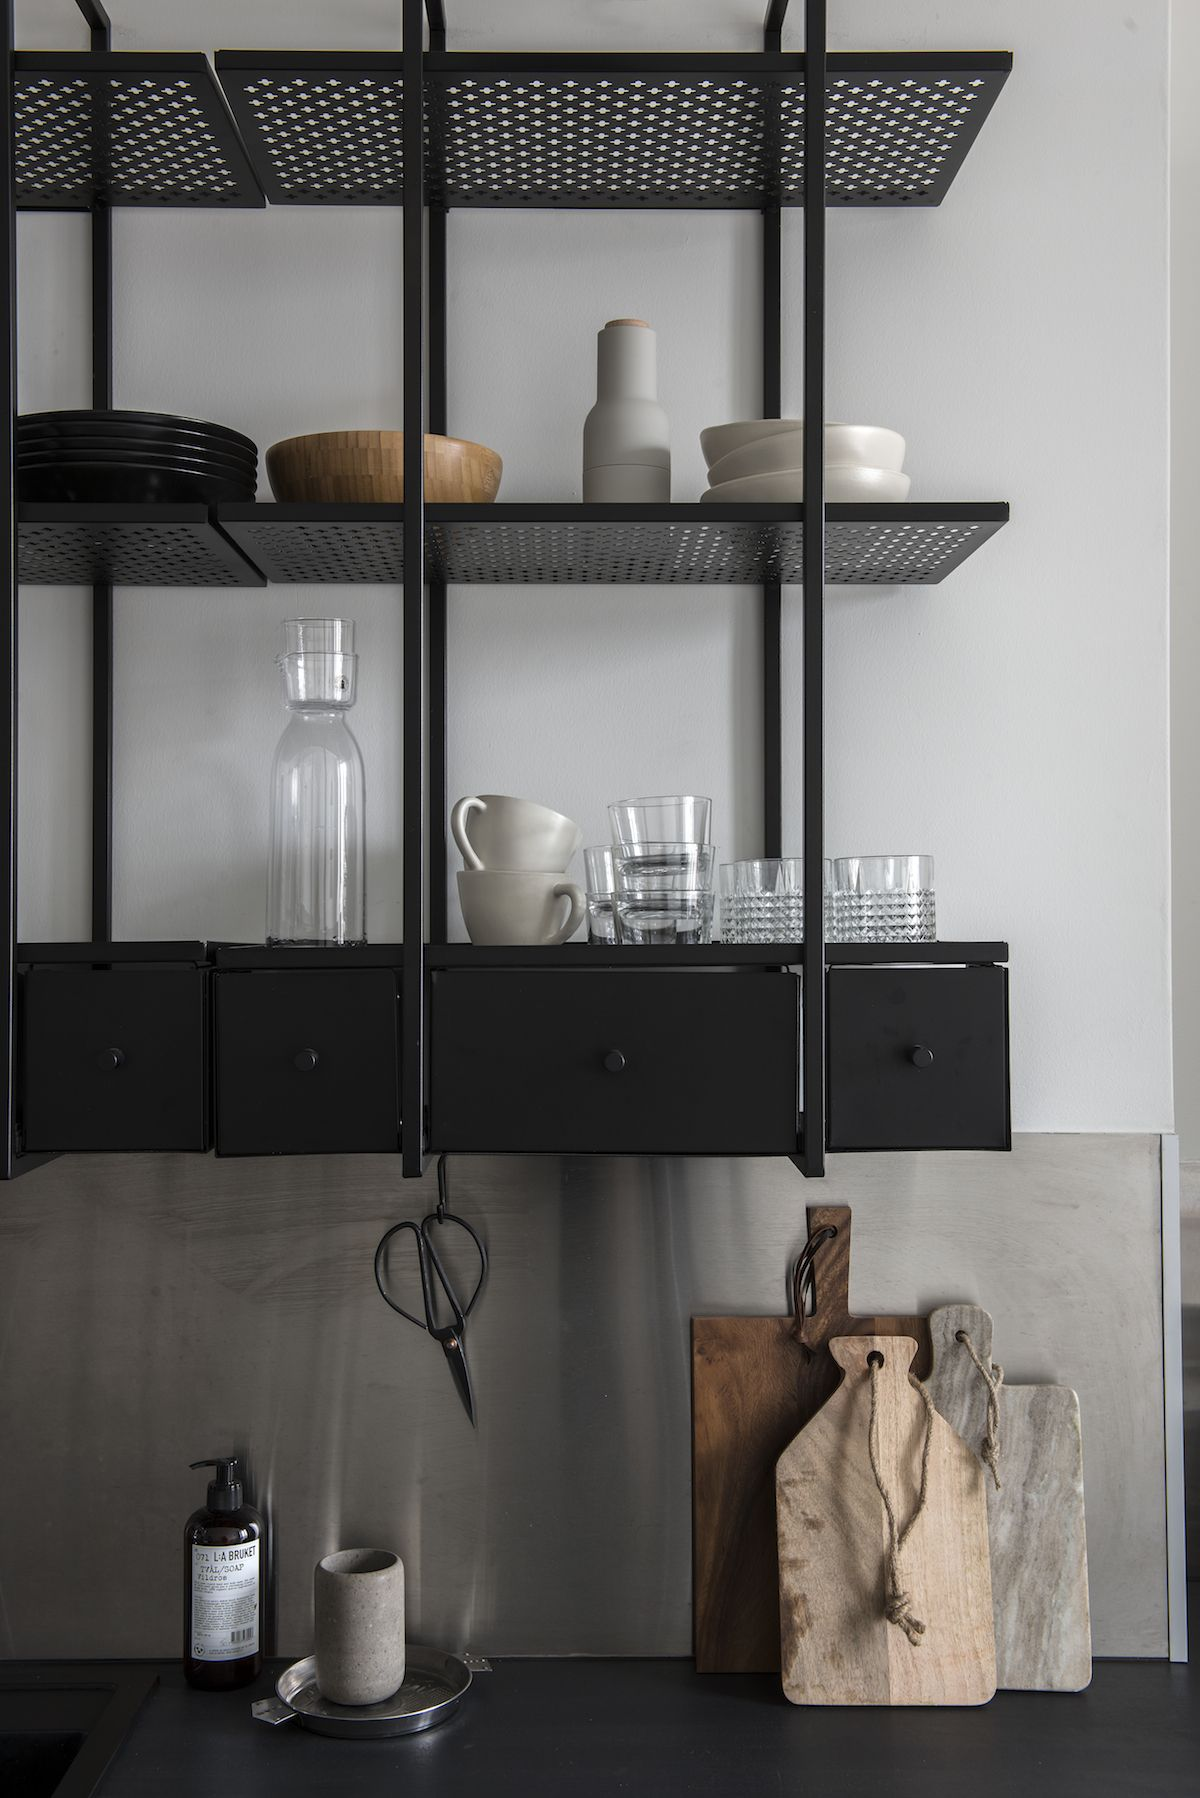 Exceptionnel Unusual Black Metal Shelves In The Kitchen | Open Shelving | Black Kitchen  Storage | Kitchen Styling | Beautiful Helsinki Home   Via Coco Lapine Design